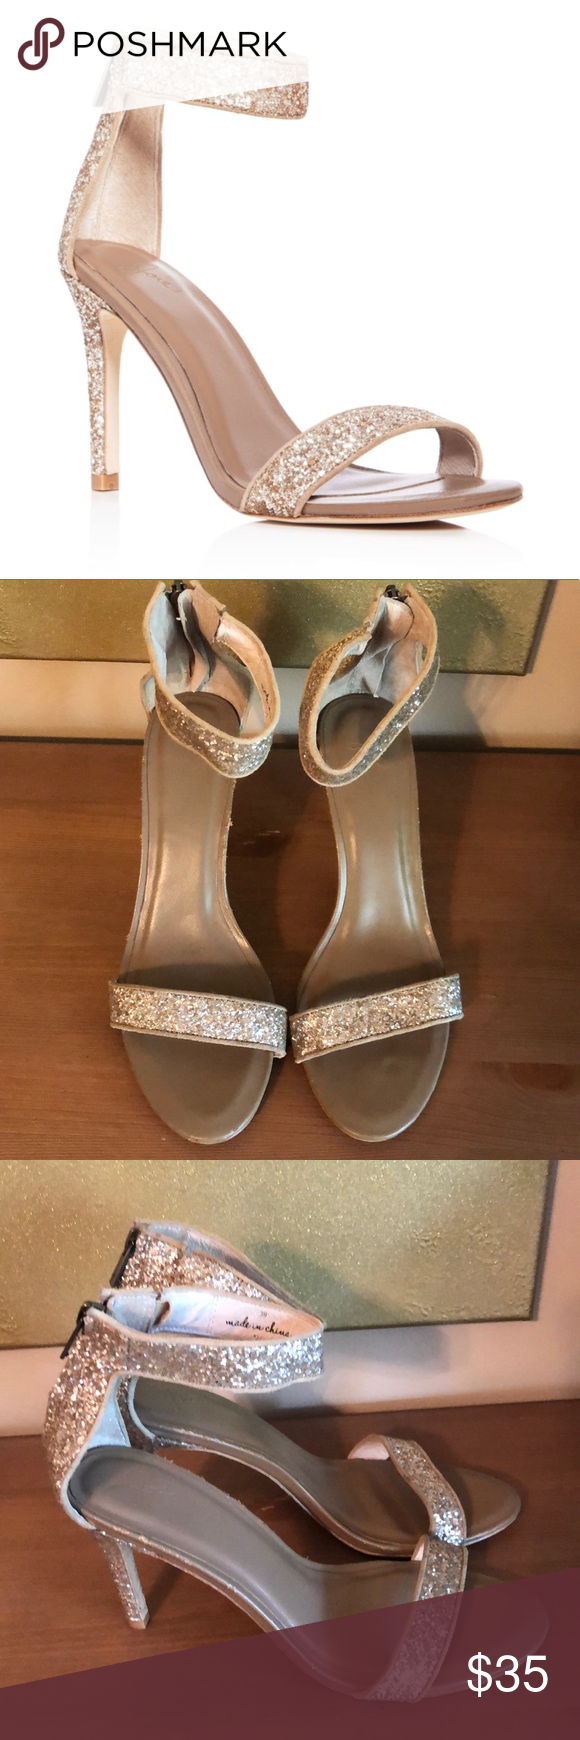 Joie Adriana Glitter Ankle Strap HighHeel Sandals Ankle